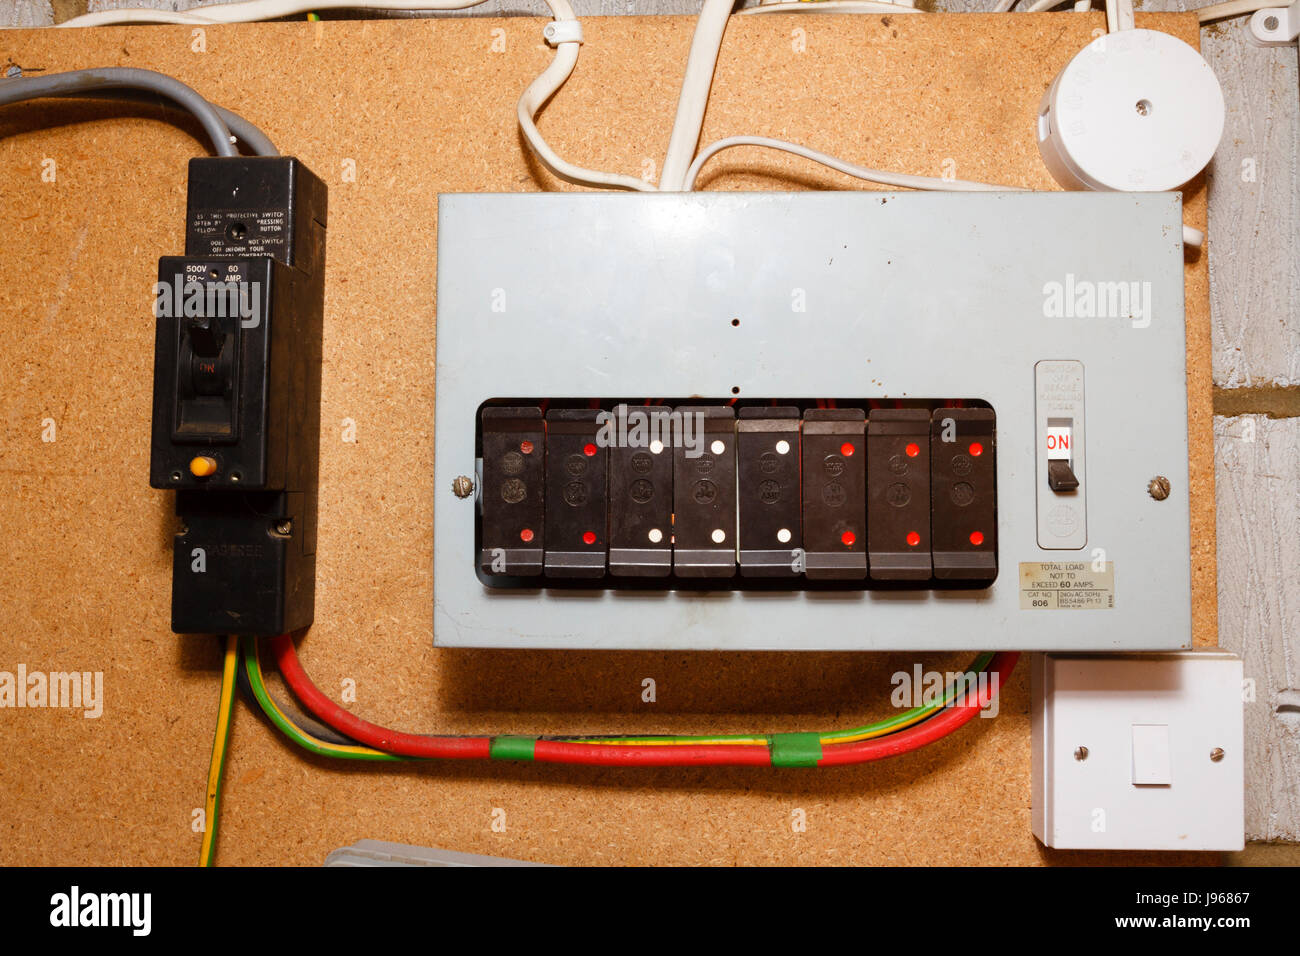 hight resolution of old style electrical fuse box uk stock image